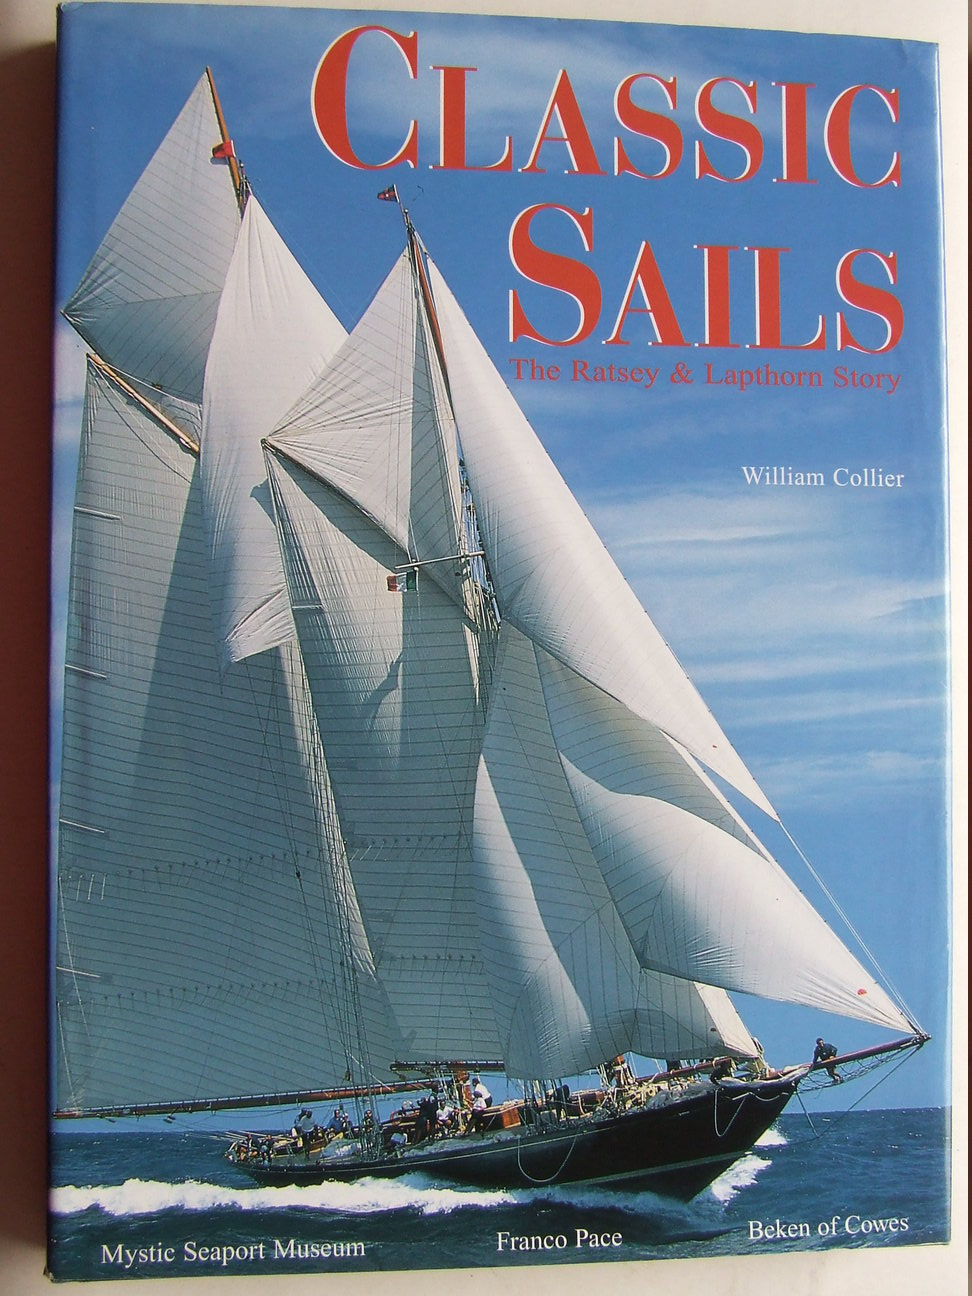 Classic Sails, the Ratsey & Lapthorn story